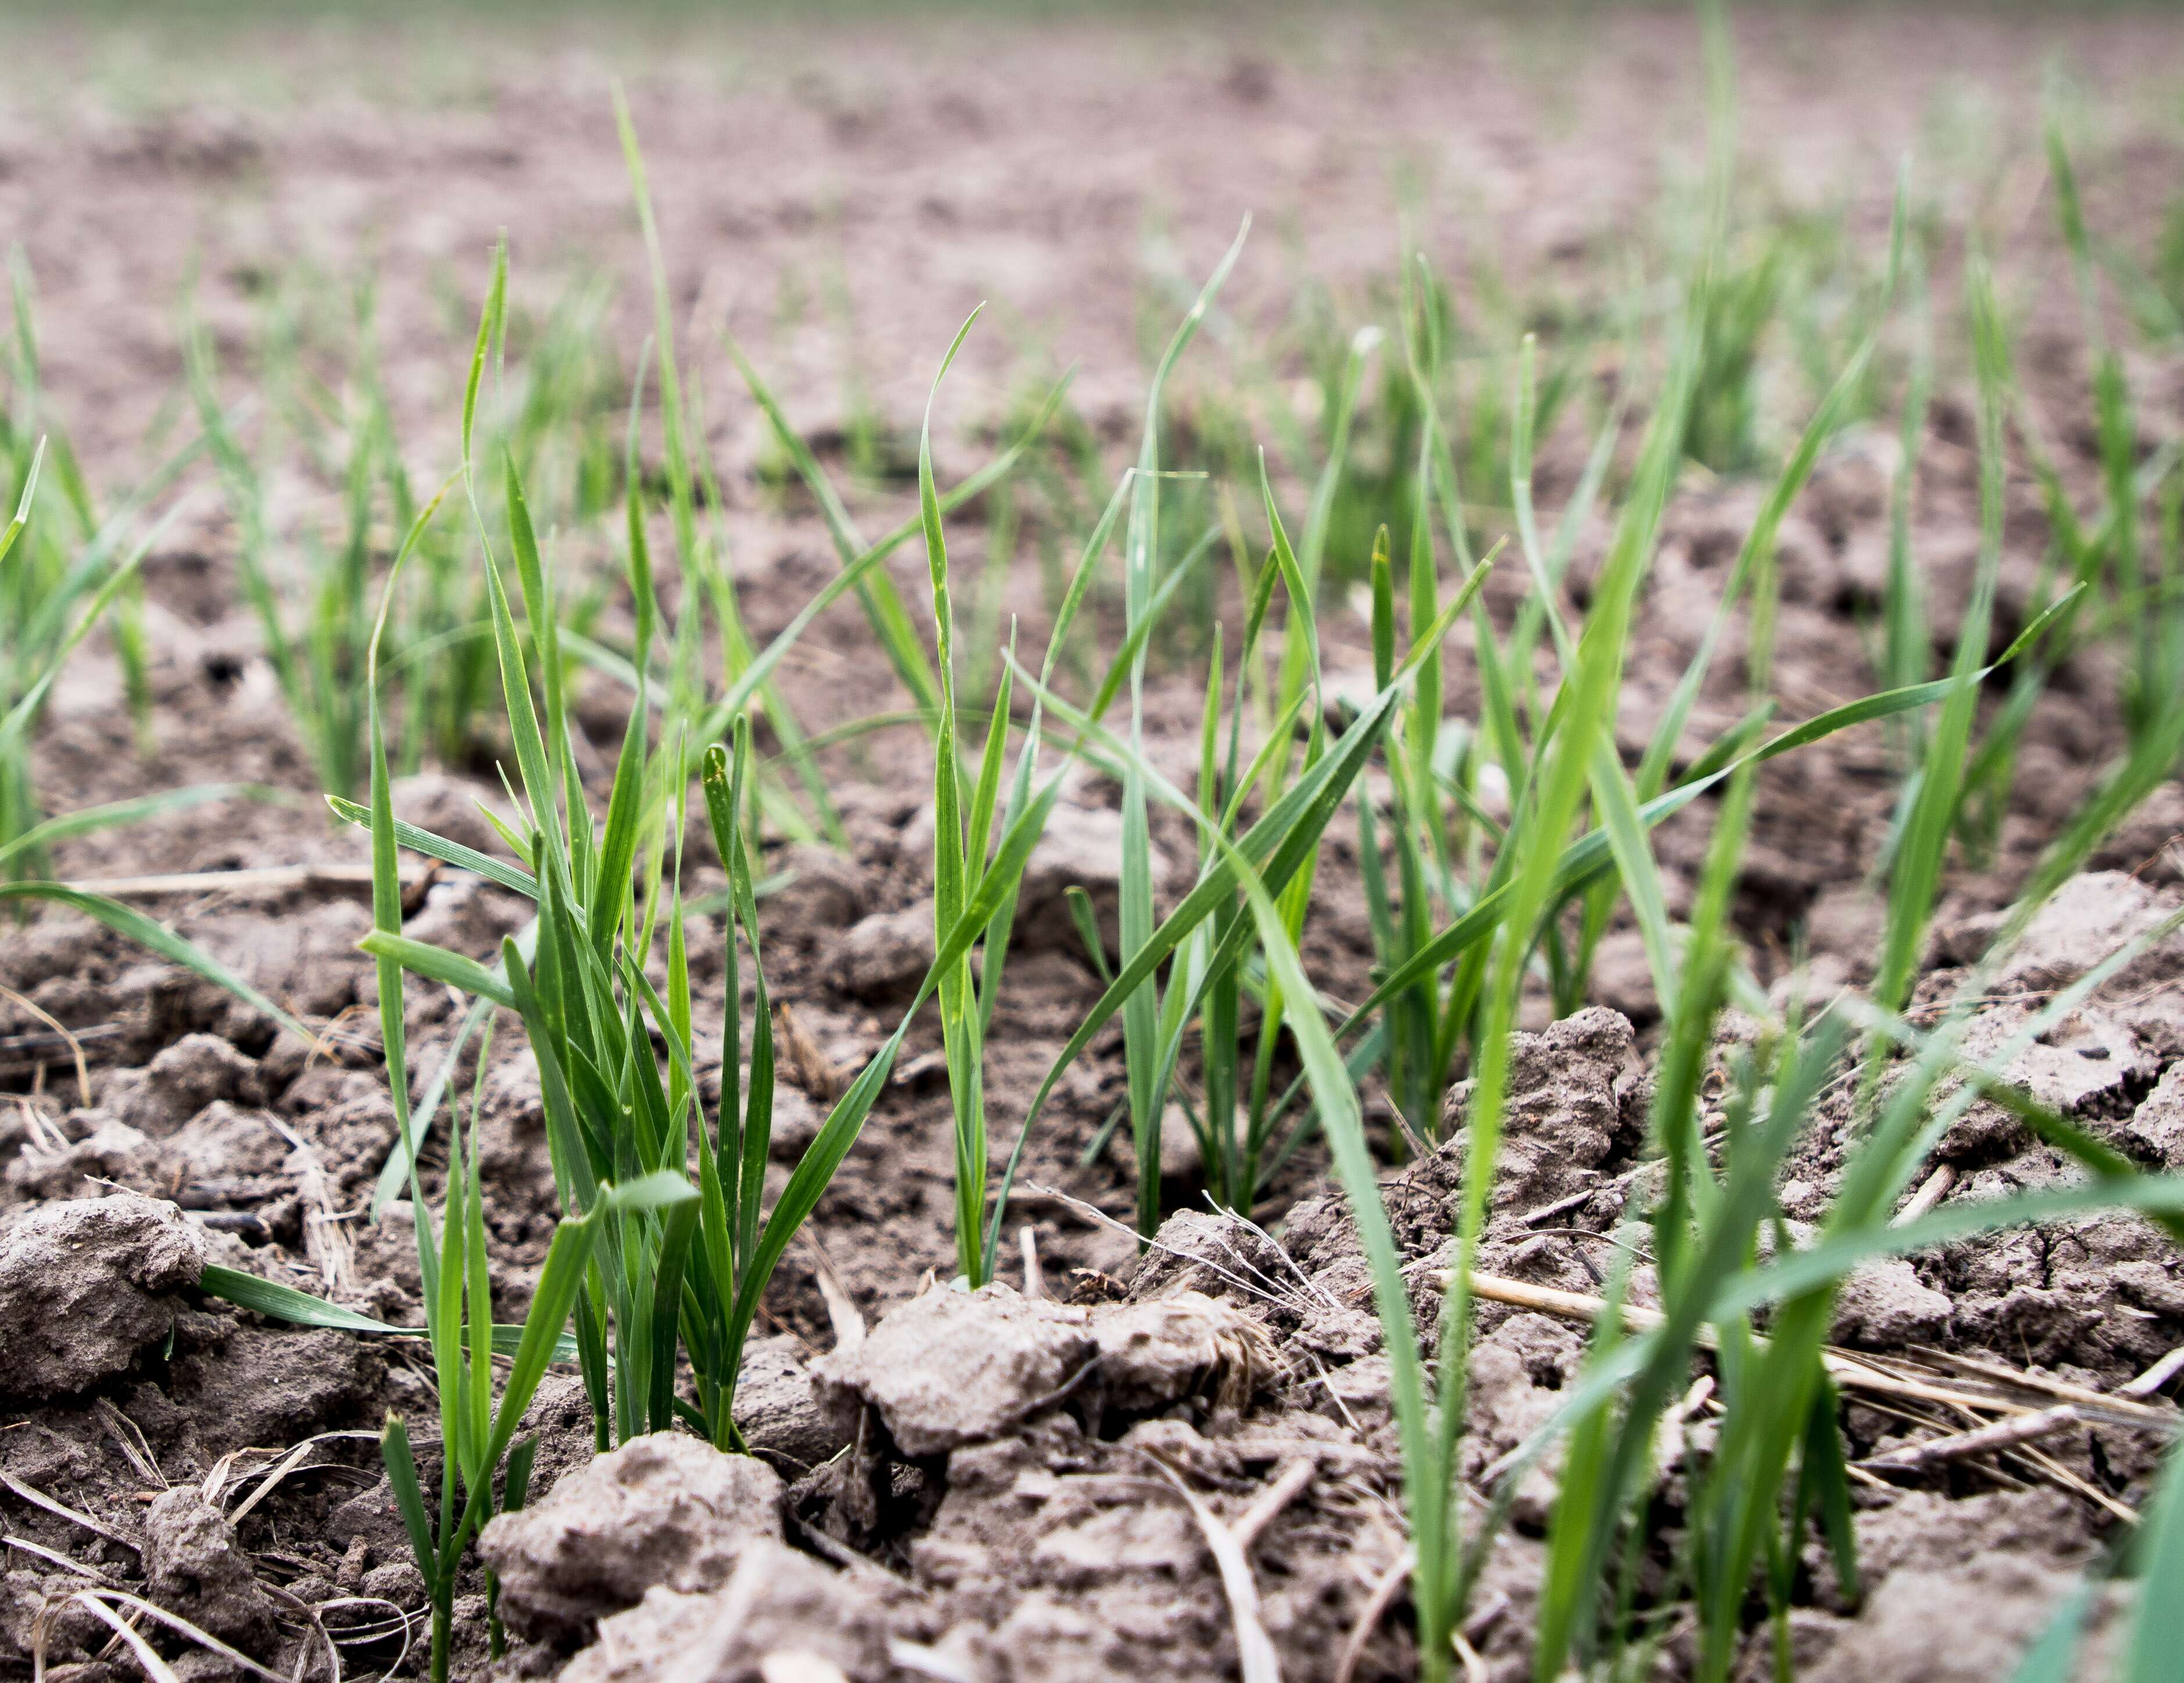 Young white winter wheat shoots emerge in Kansas